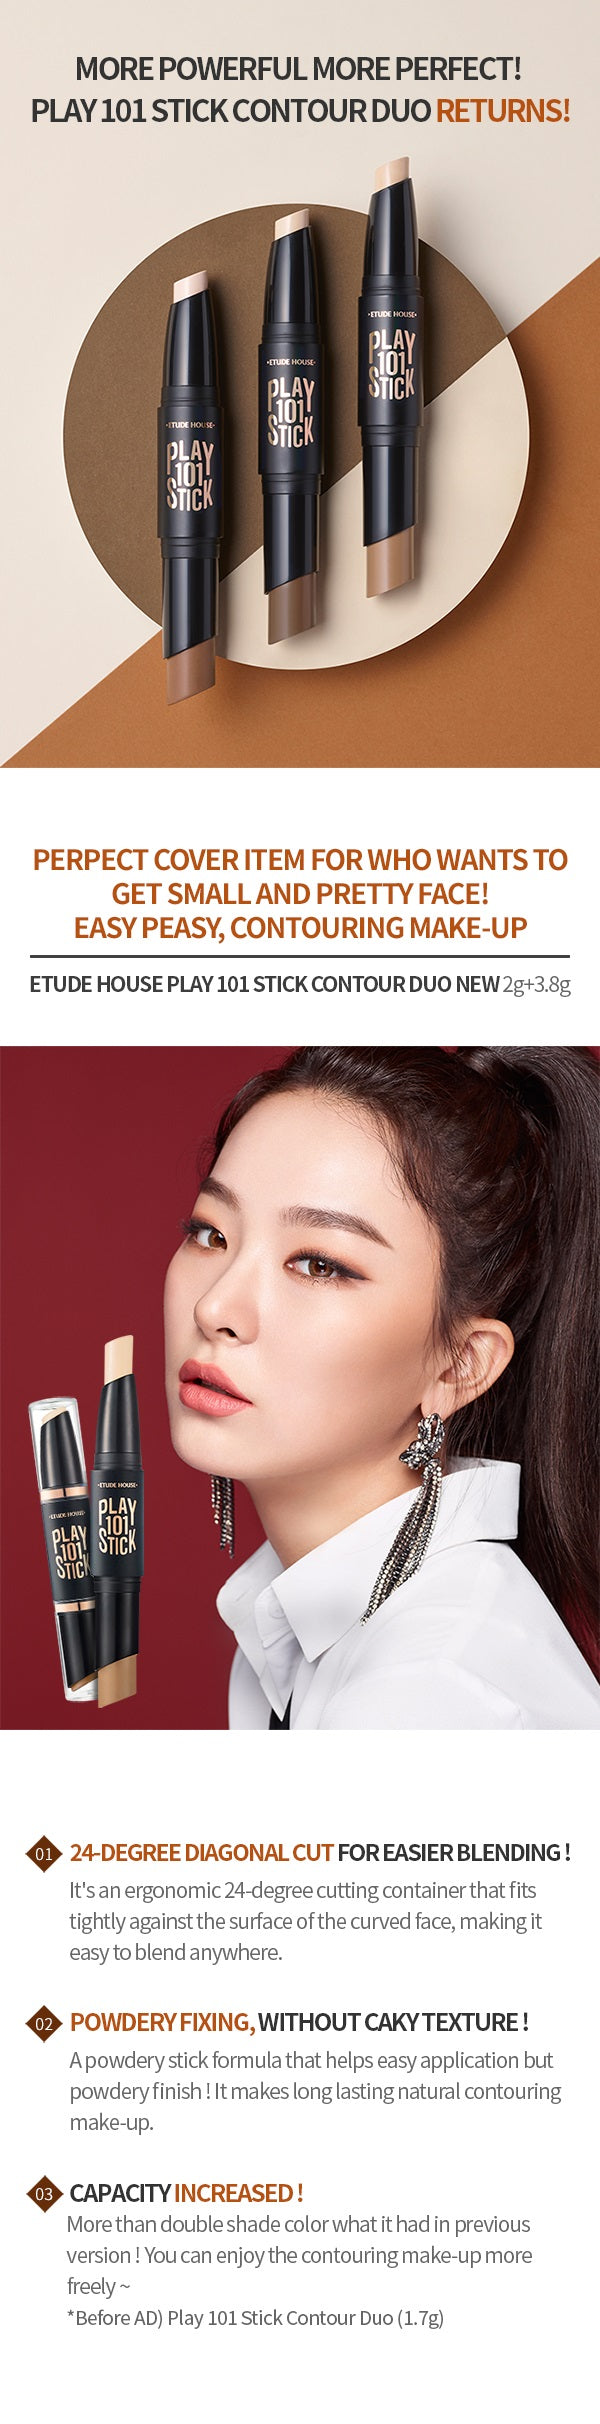 Etude House Play 101 Stick Contour Duo #1 ORIGINAL